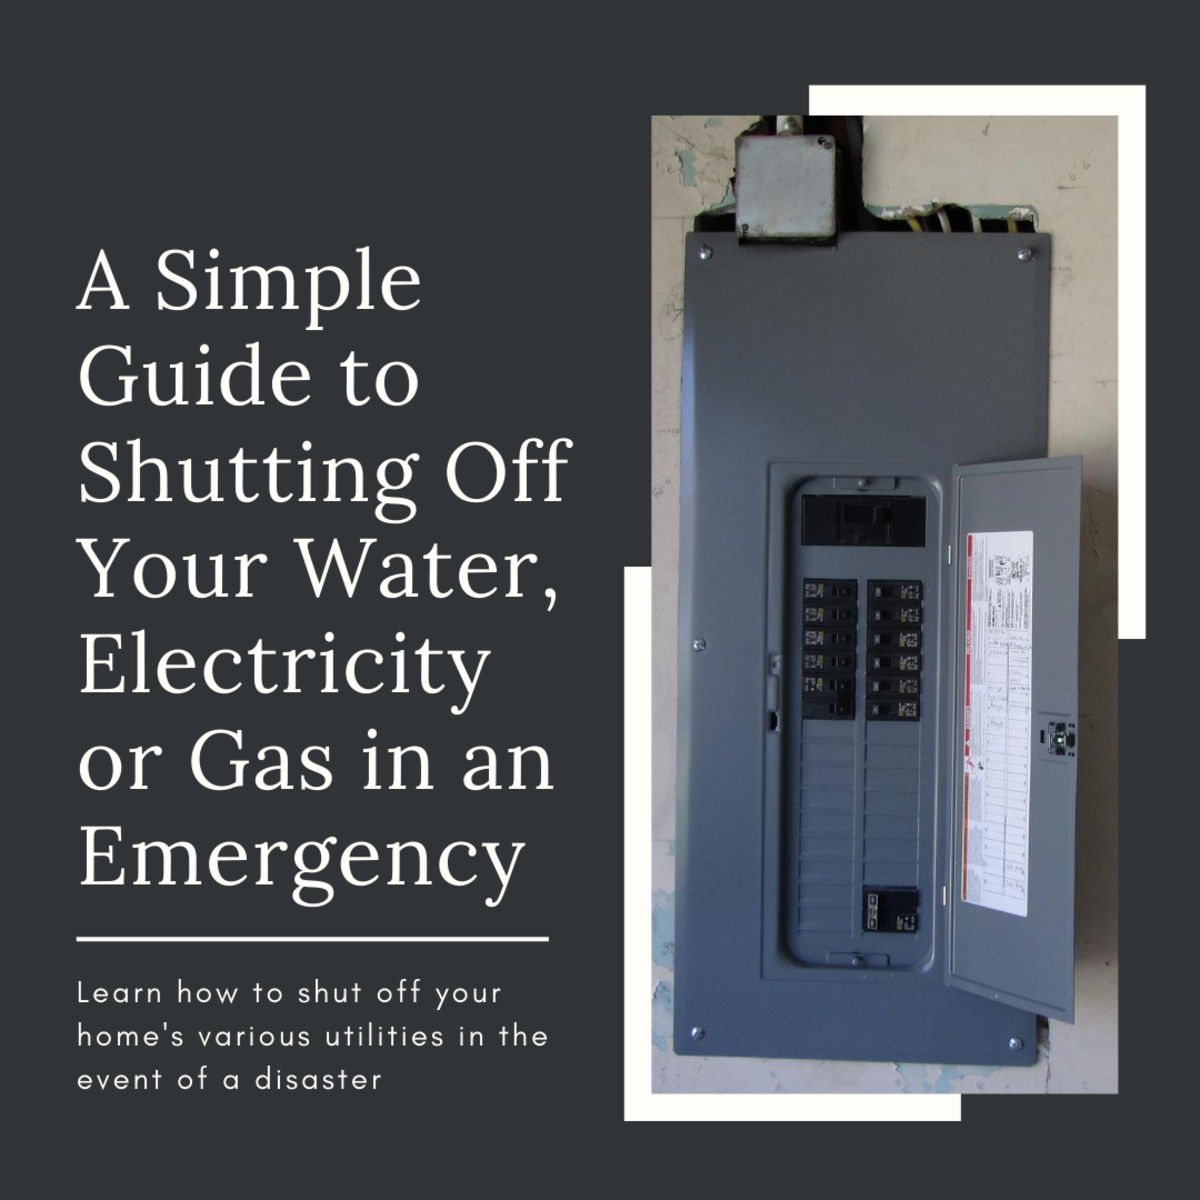 How to Shut Off Your Home's Water, Electricity and Gas in an Emergency